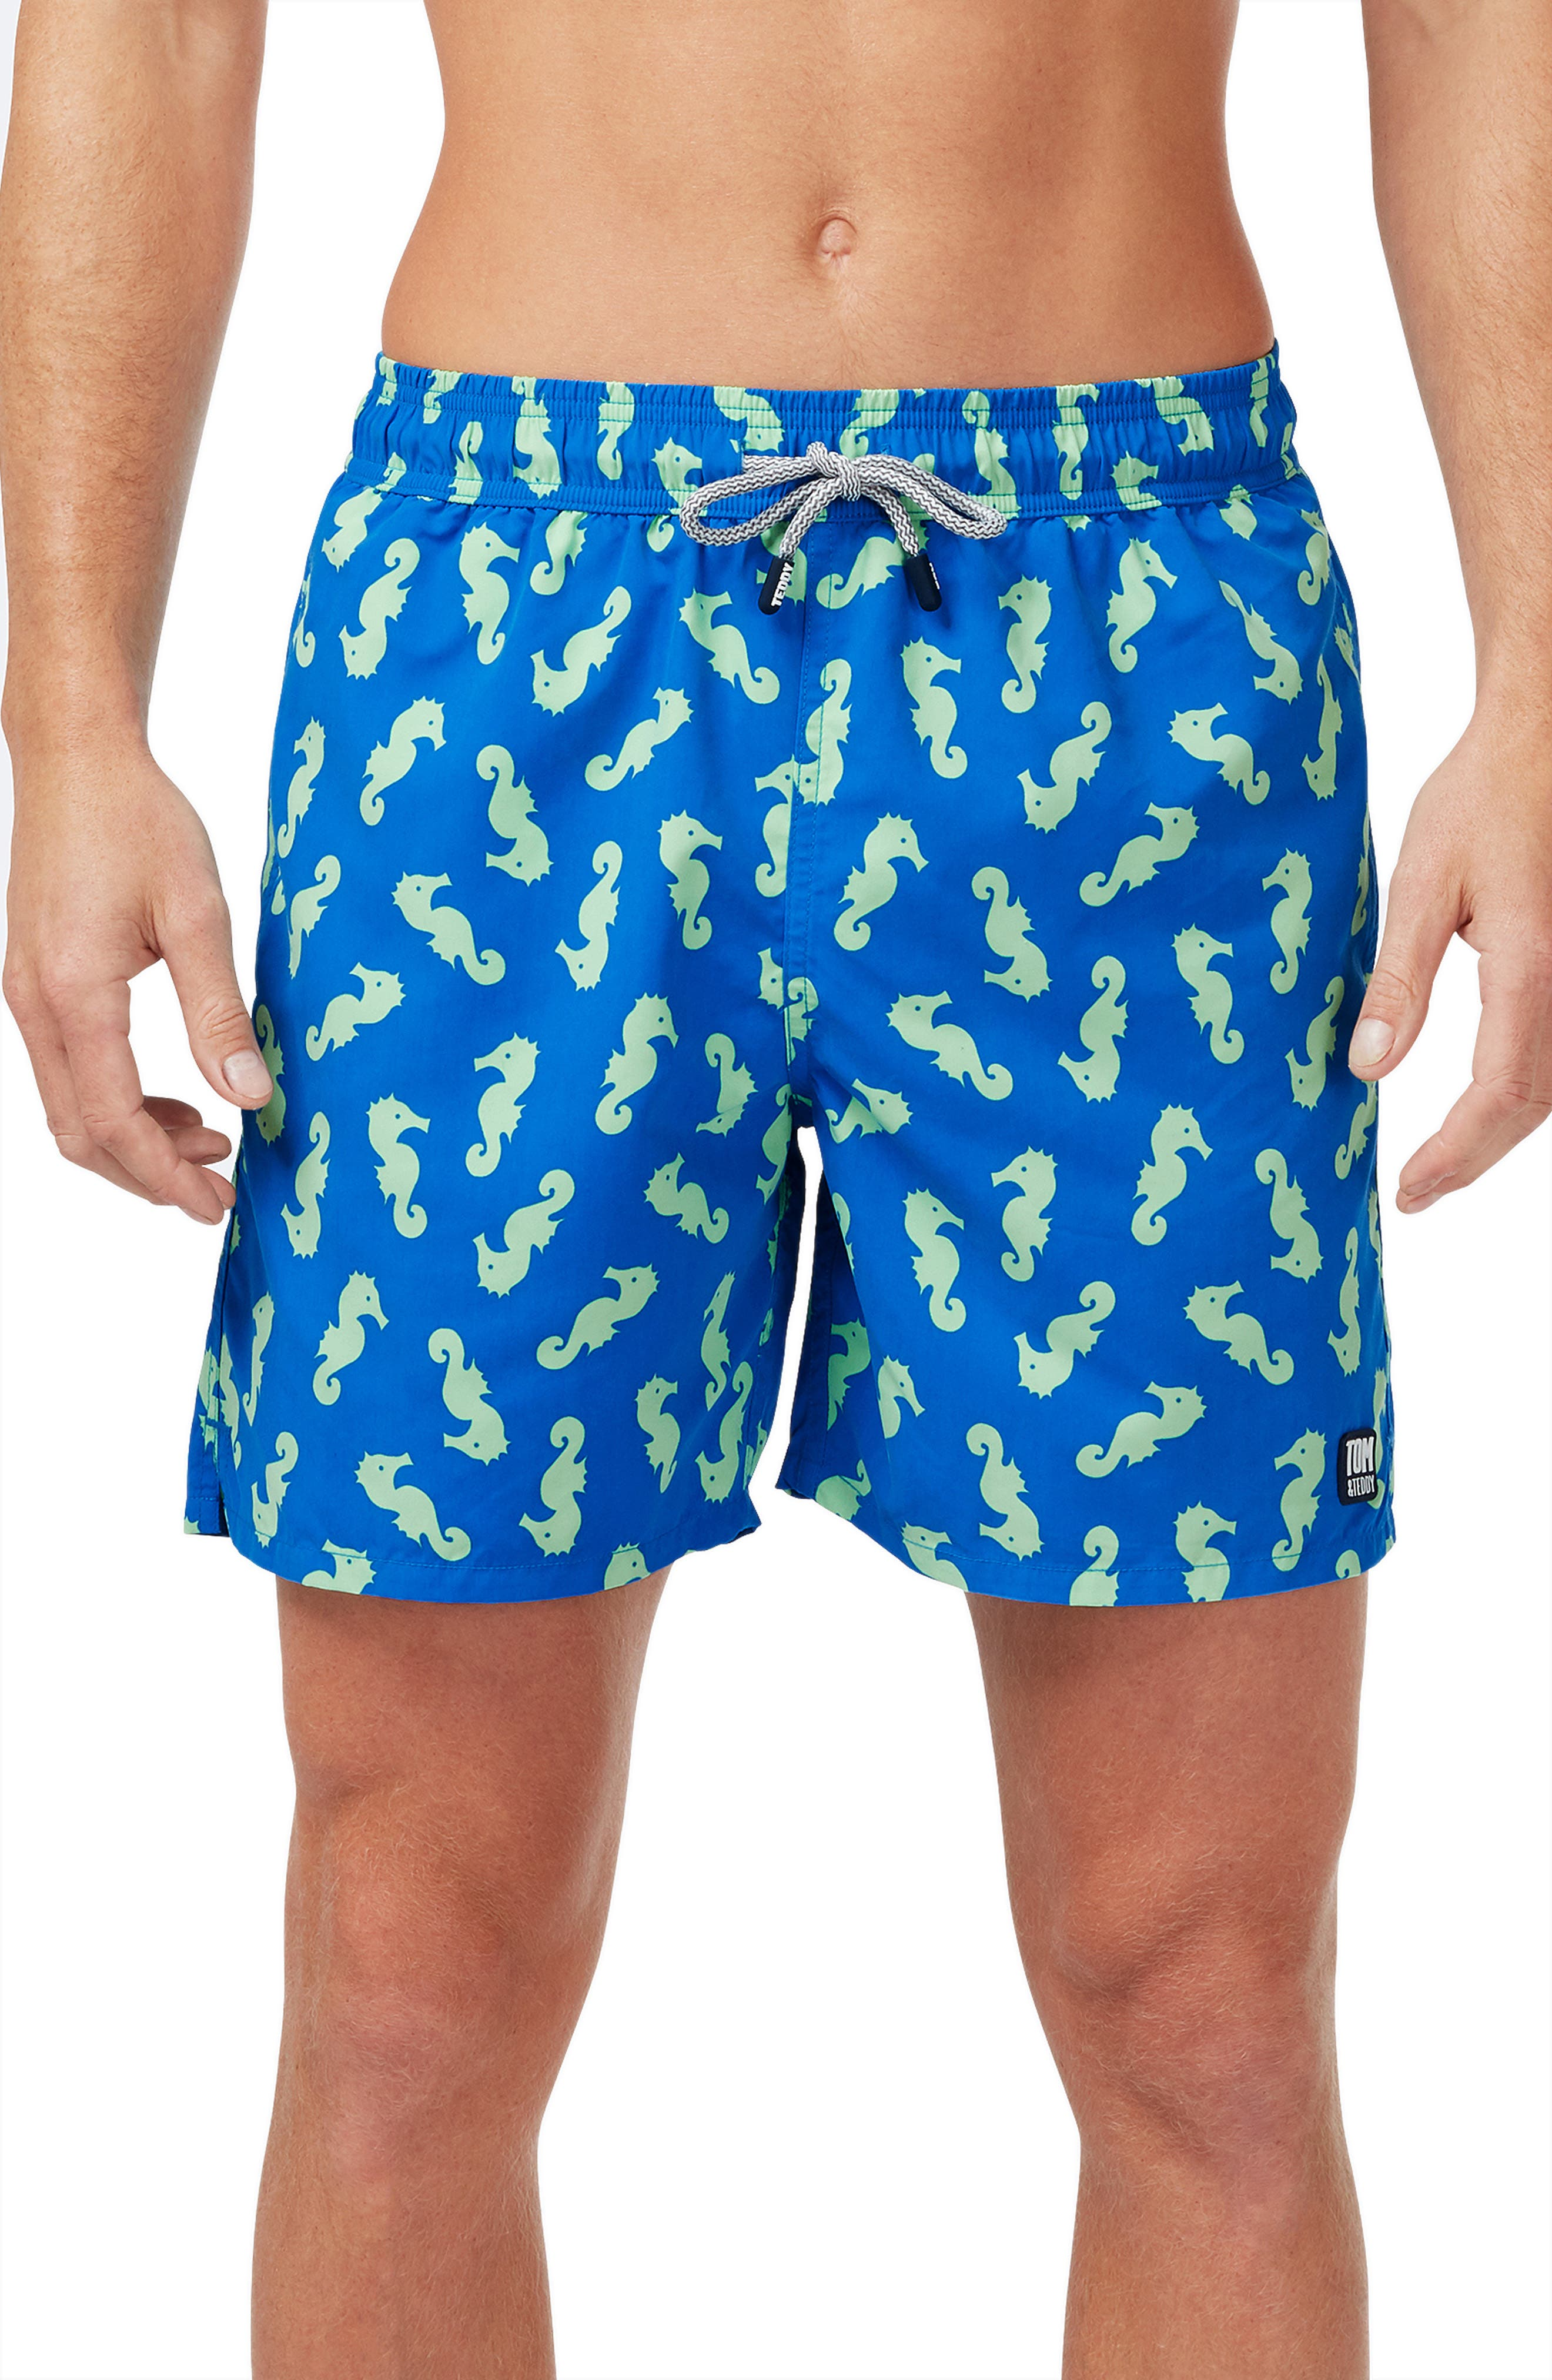 Seahorses dance across light quick-dry swim trunks that are UV-blocking and resistant to fading from salt and chlorine. Style Name: Tom & Teddy Seahorse Print Swim Trunks. Style Number: 6013733. Available in stores.